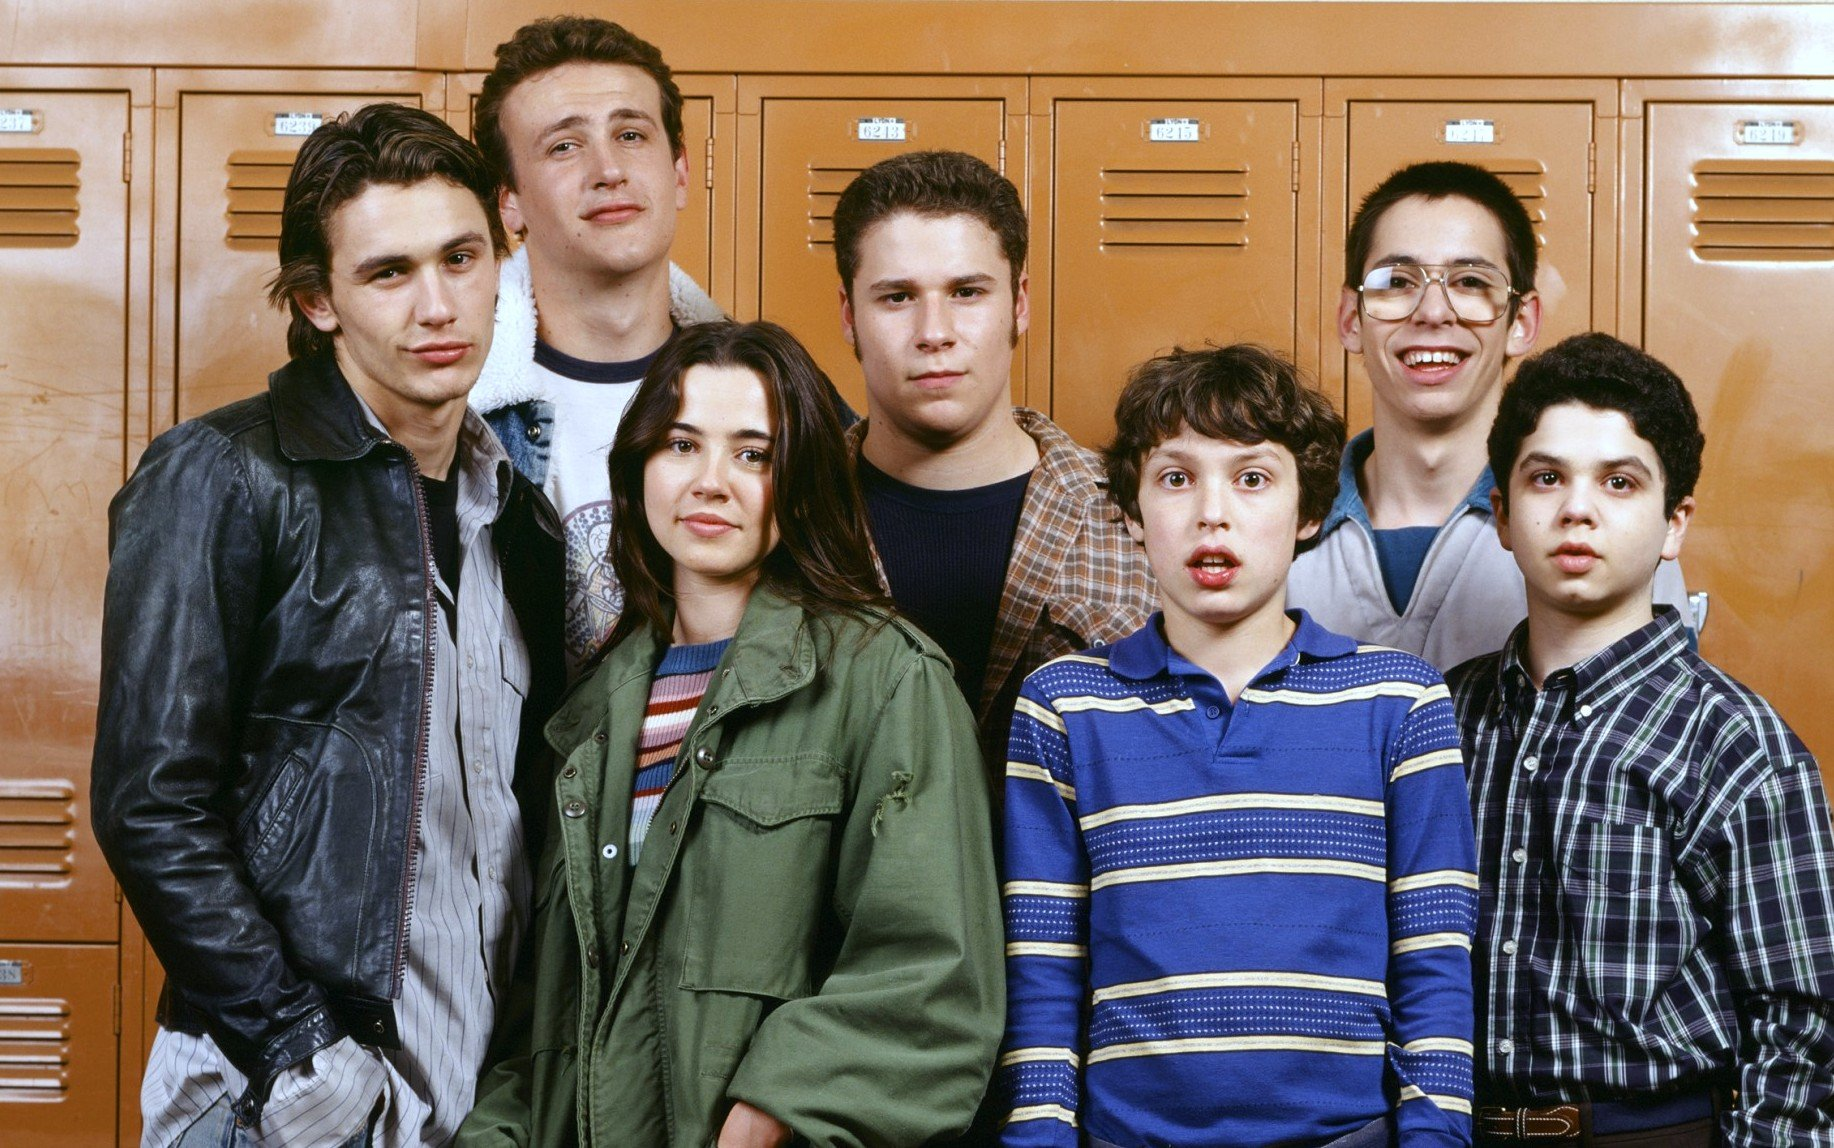 The cast of 'Freaks and Geeks' are standing together in front of orange lockers.